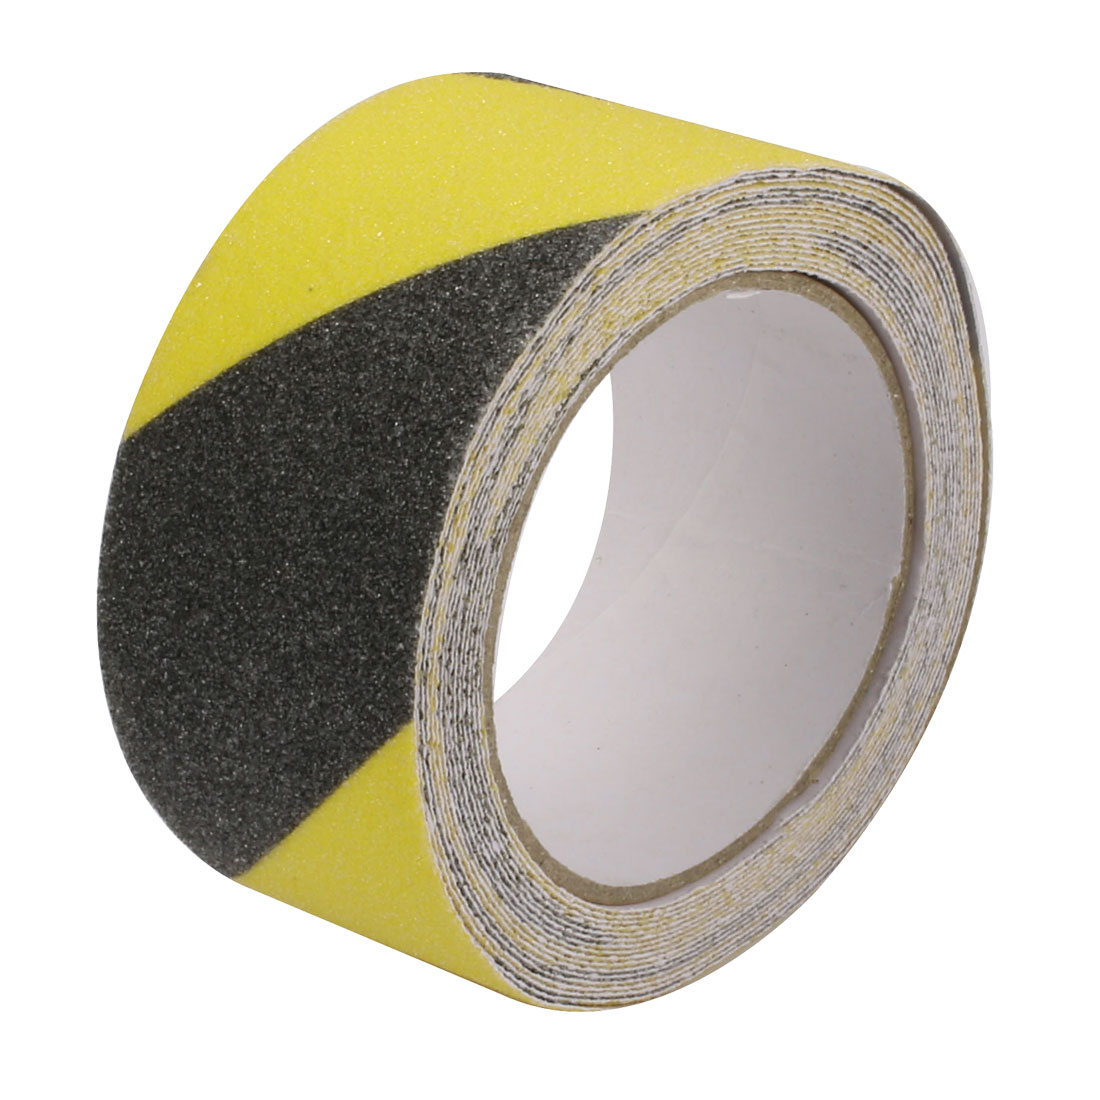 5M Long 5cm Wide Adhesive Grit Anti Slip Tape Black Yellow for Stairs Floor